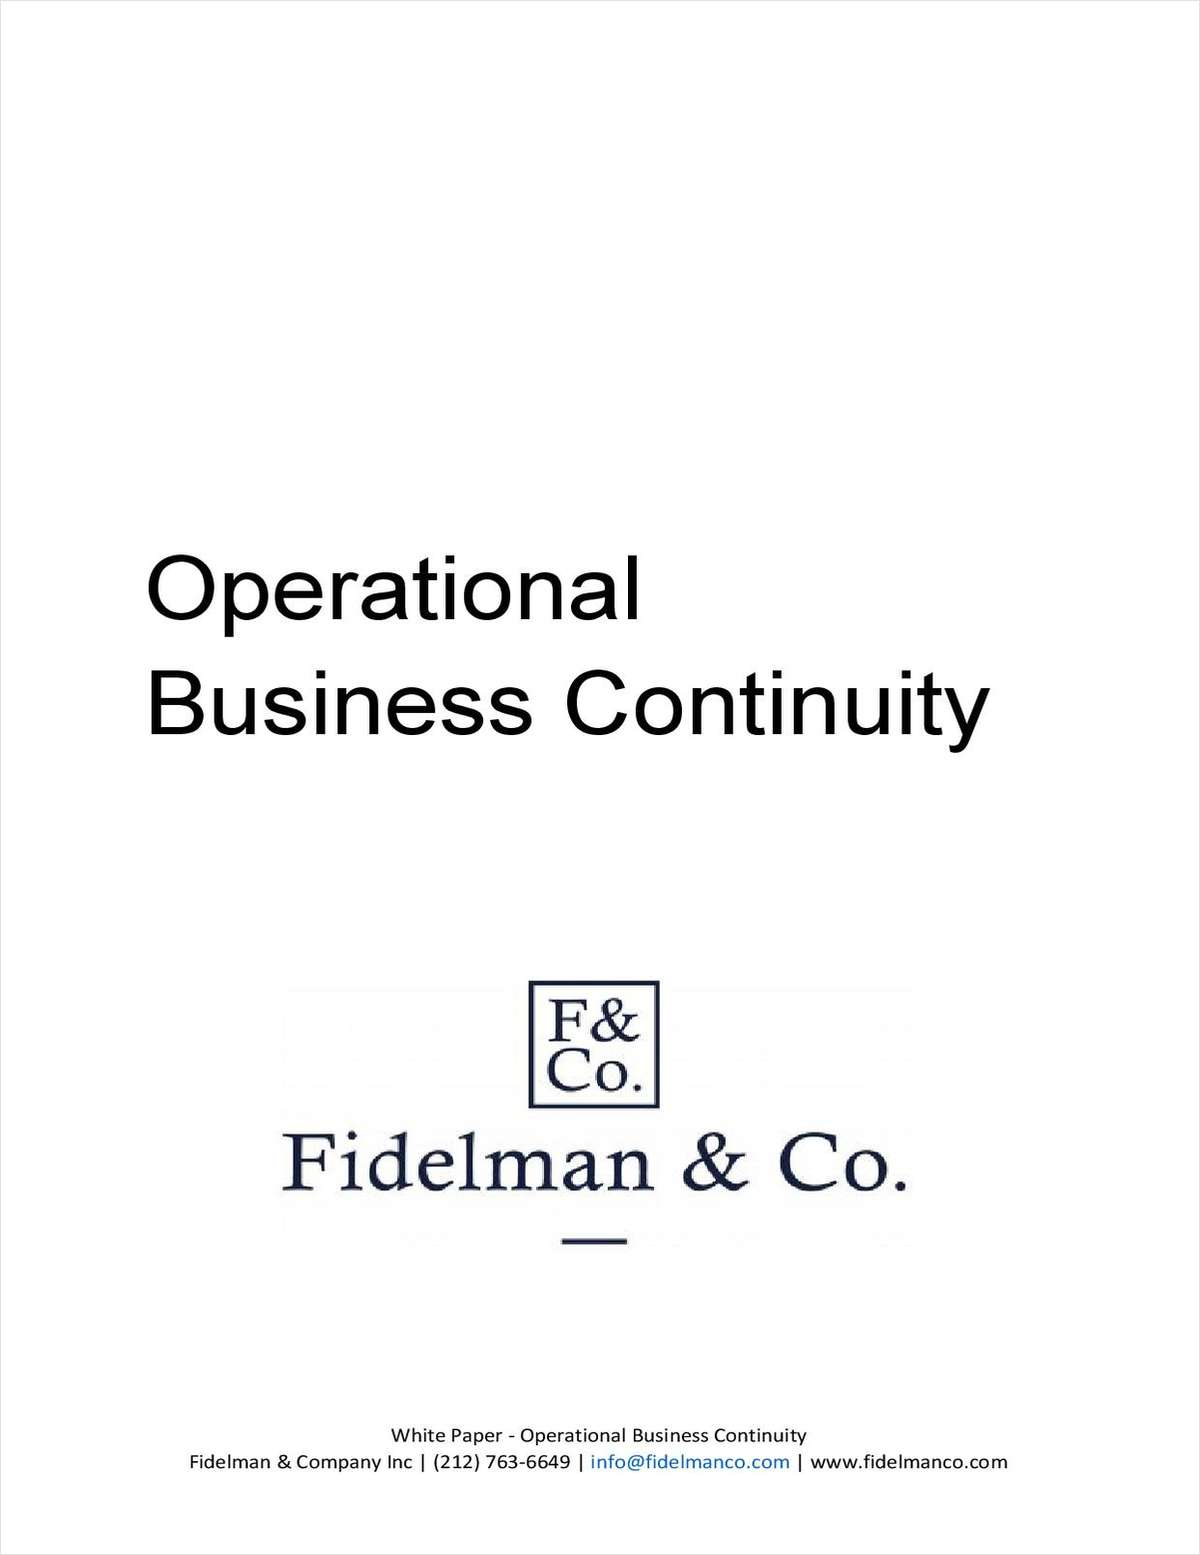 Operational Business Continuity